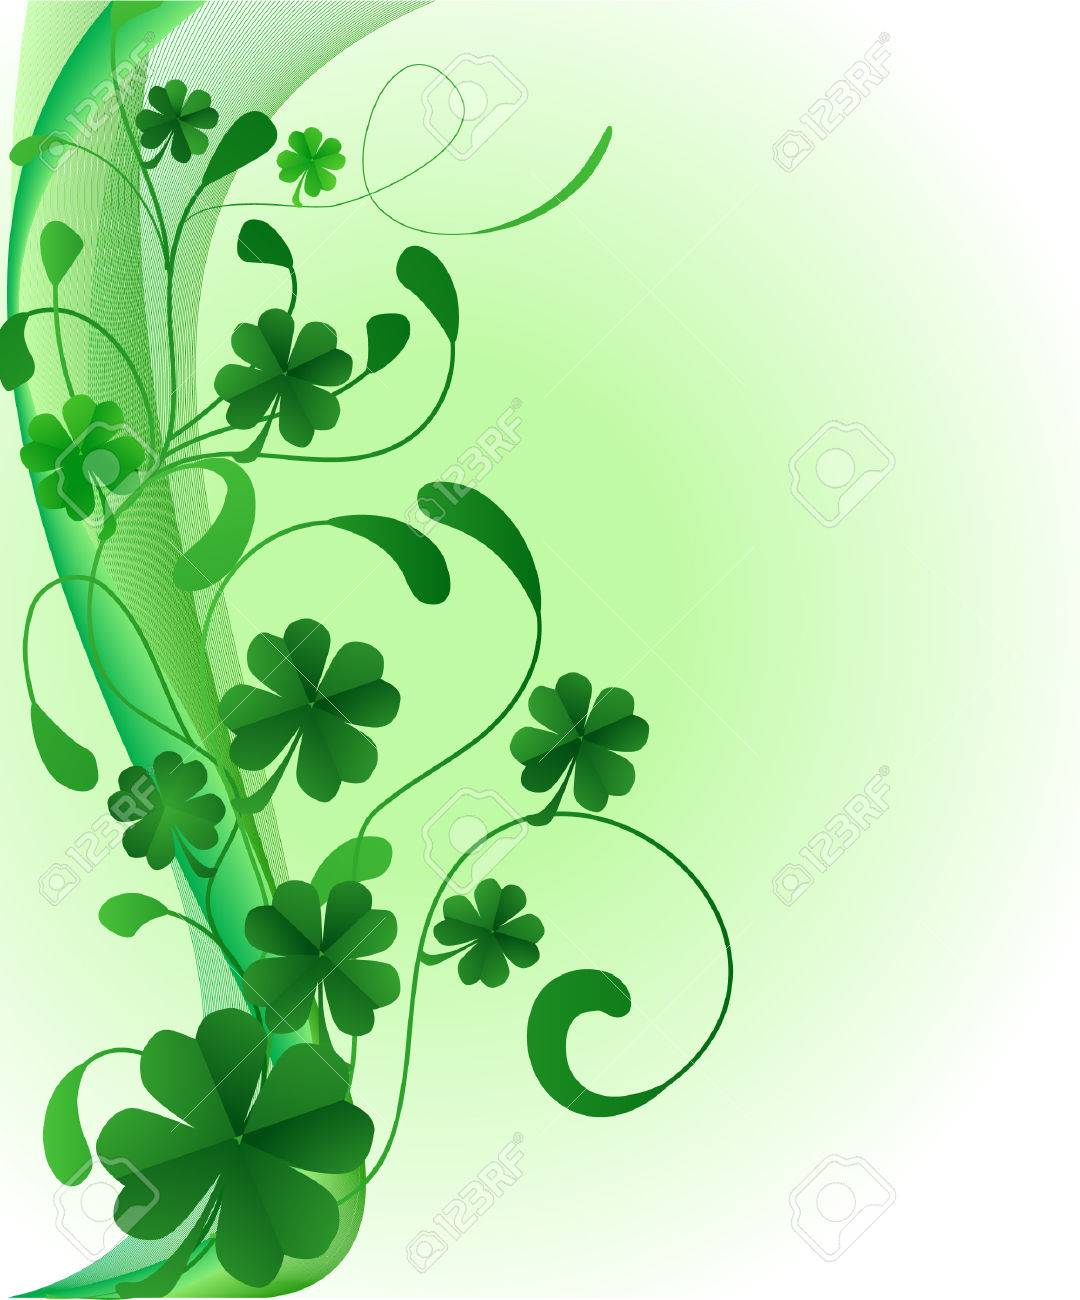 abstract saint patrick's day illustration Stock Vector - 4464957